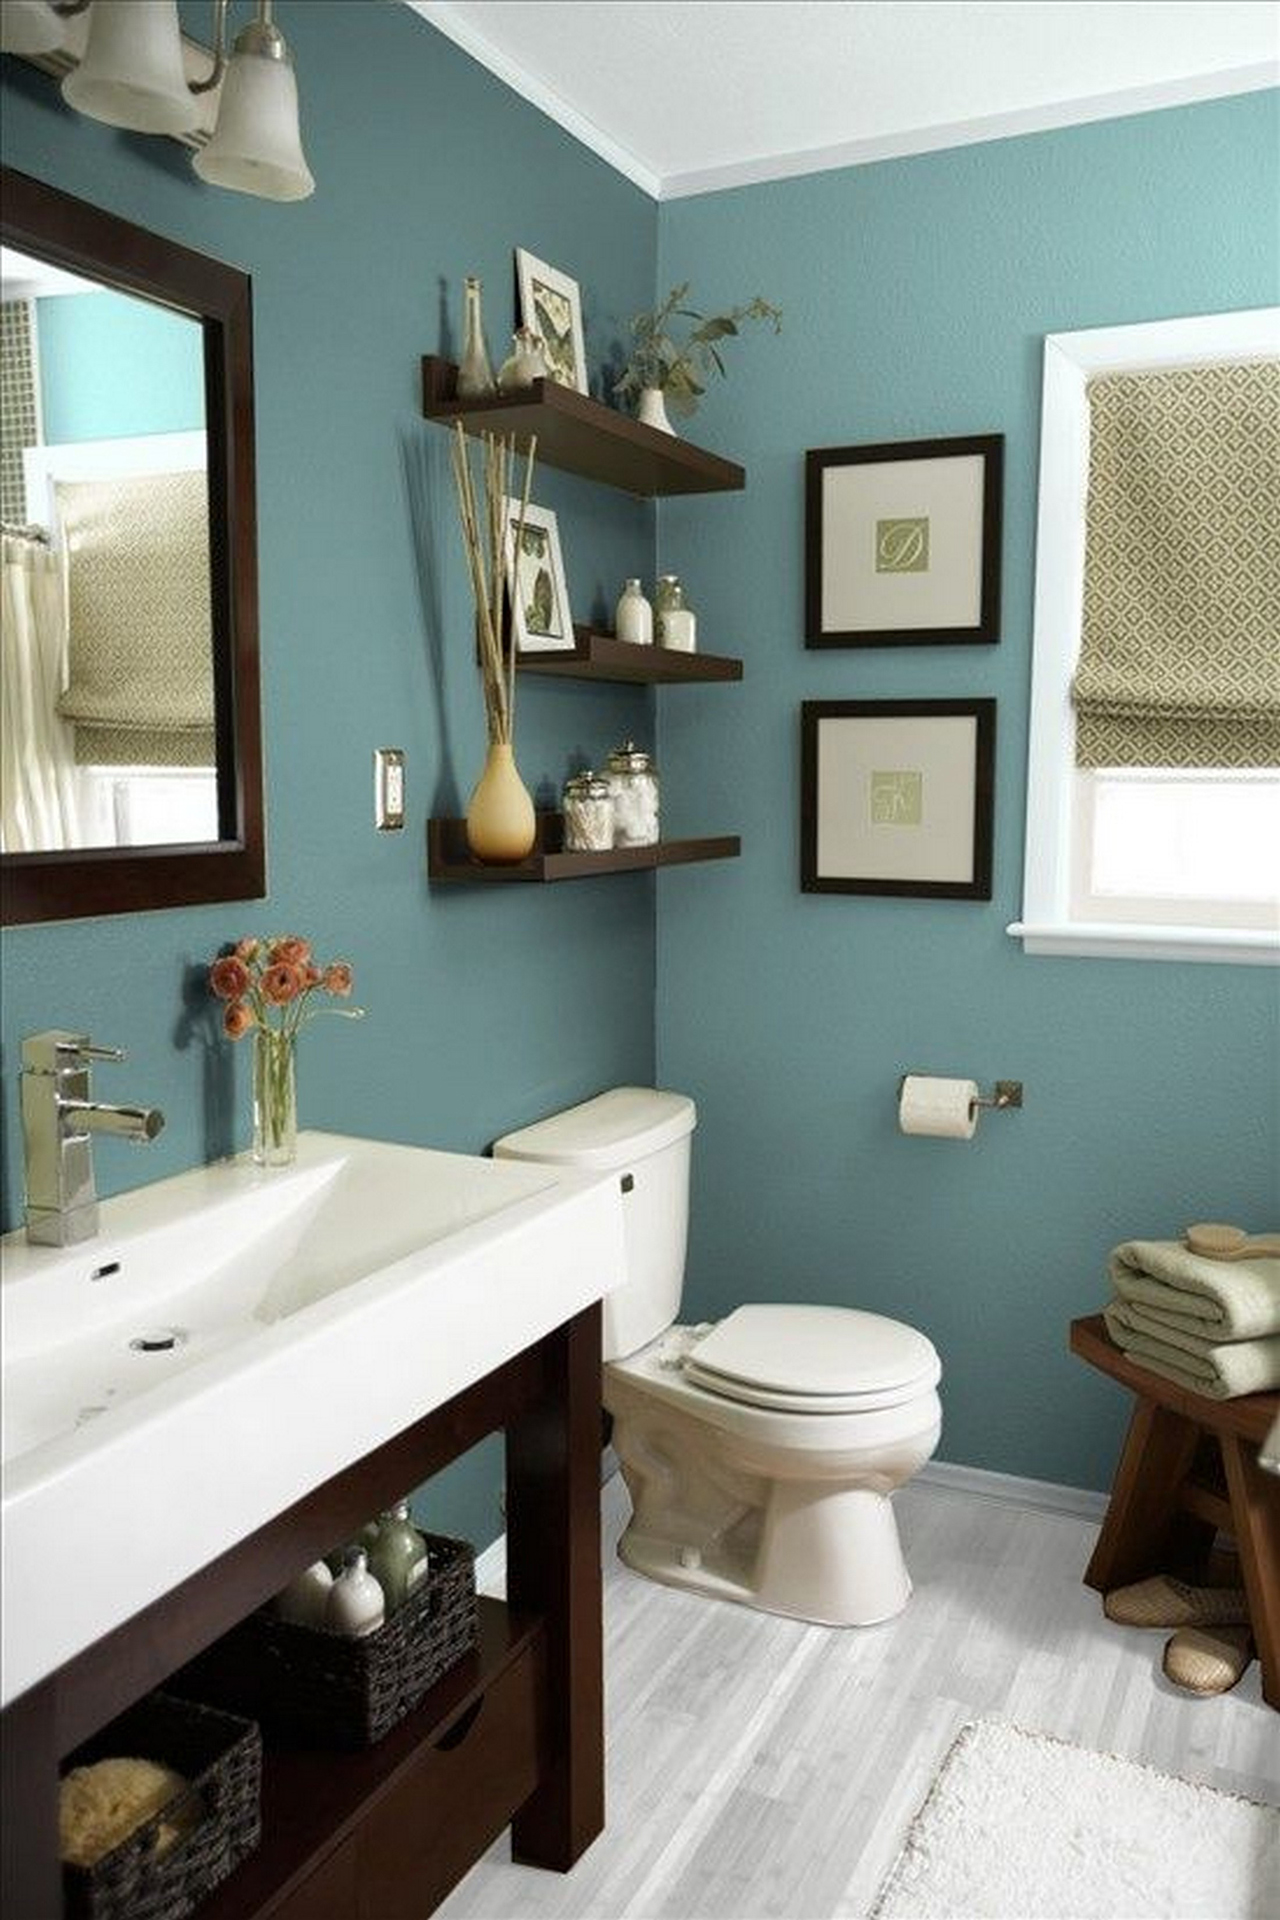 Bathroom Accessories Ideas 25 Best Bathroom Decor Ideas And Designs For 2019